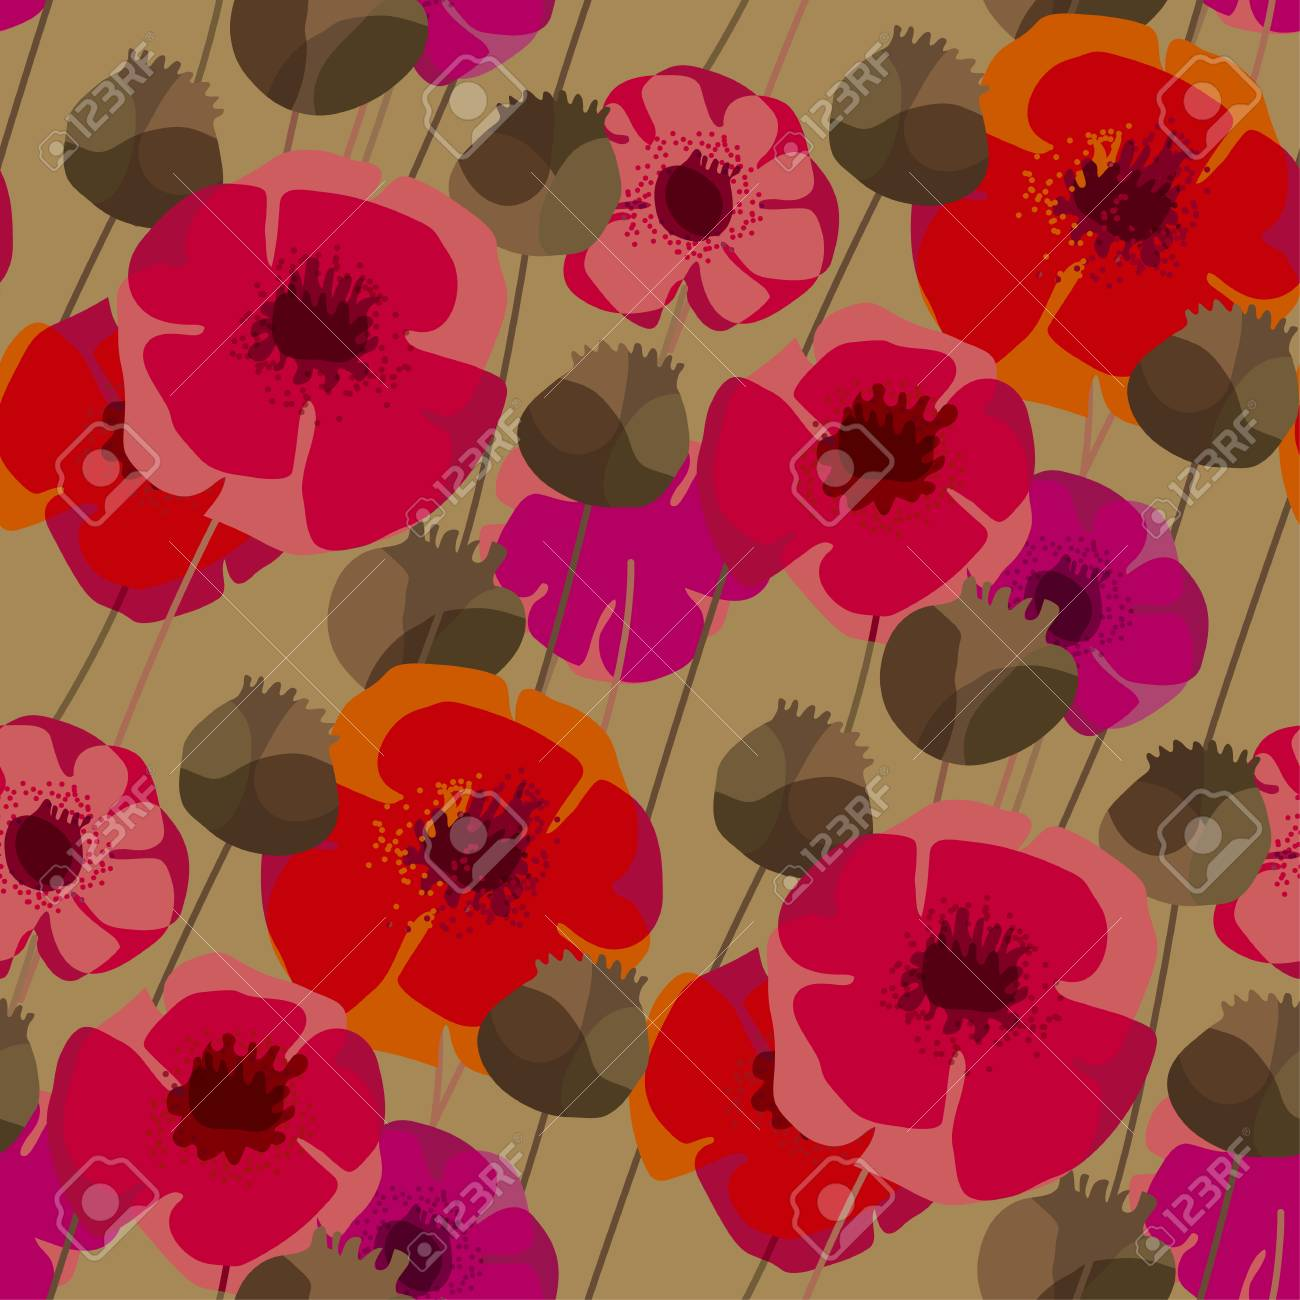 Poppy Flowers And Seed Boxes Seamless Pattern For Background